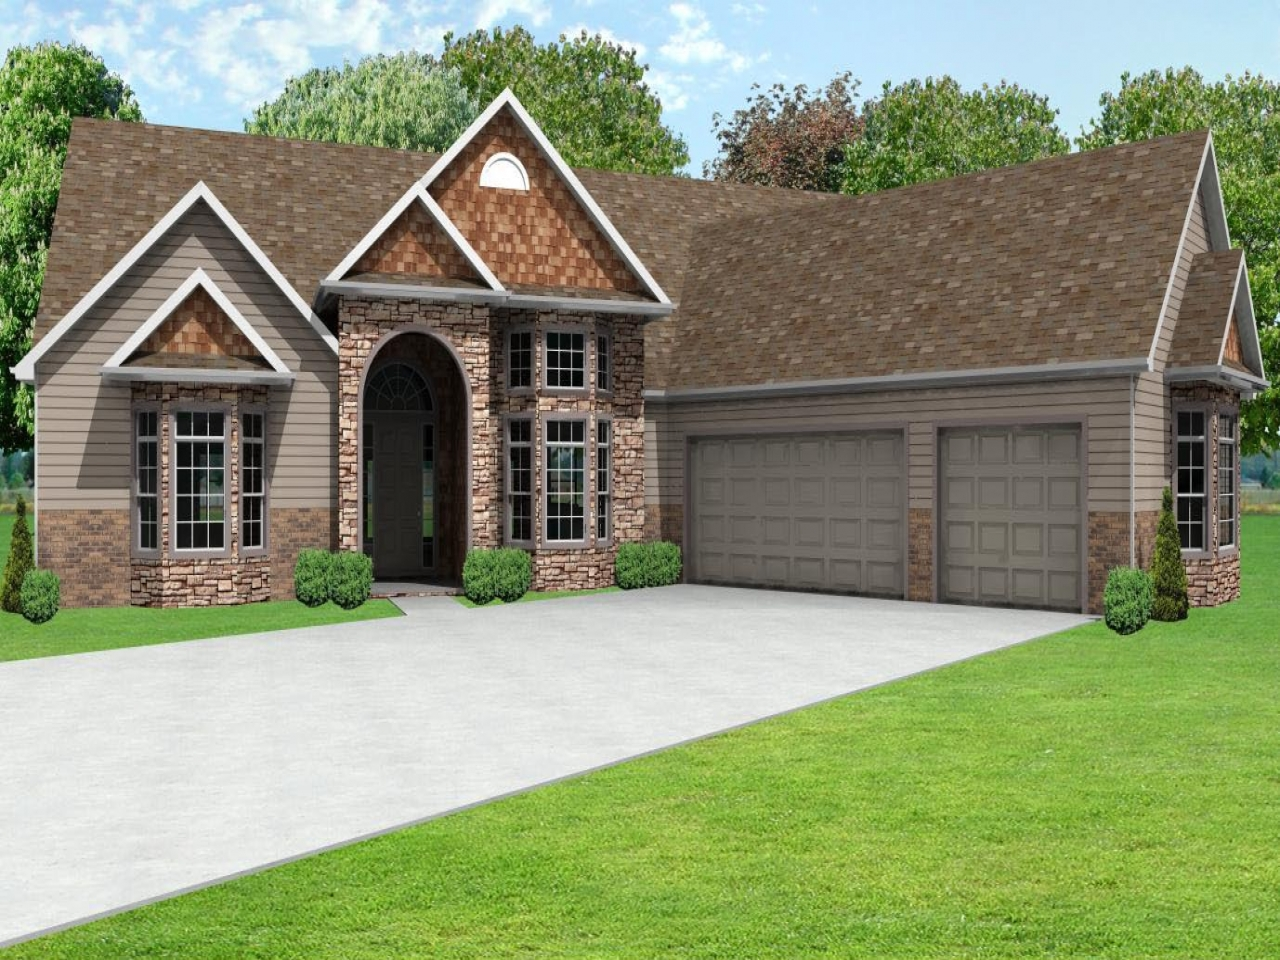 Ranch House Plans With 3 Car Garage Ranch House Plans With 3 Car Garage Ranch House Plans